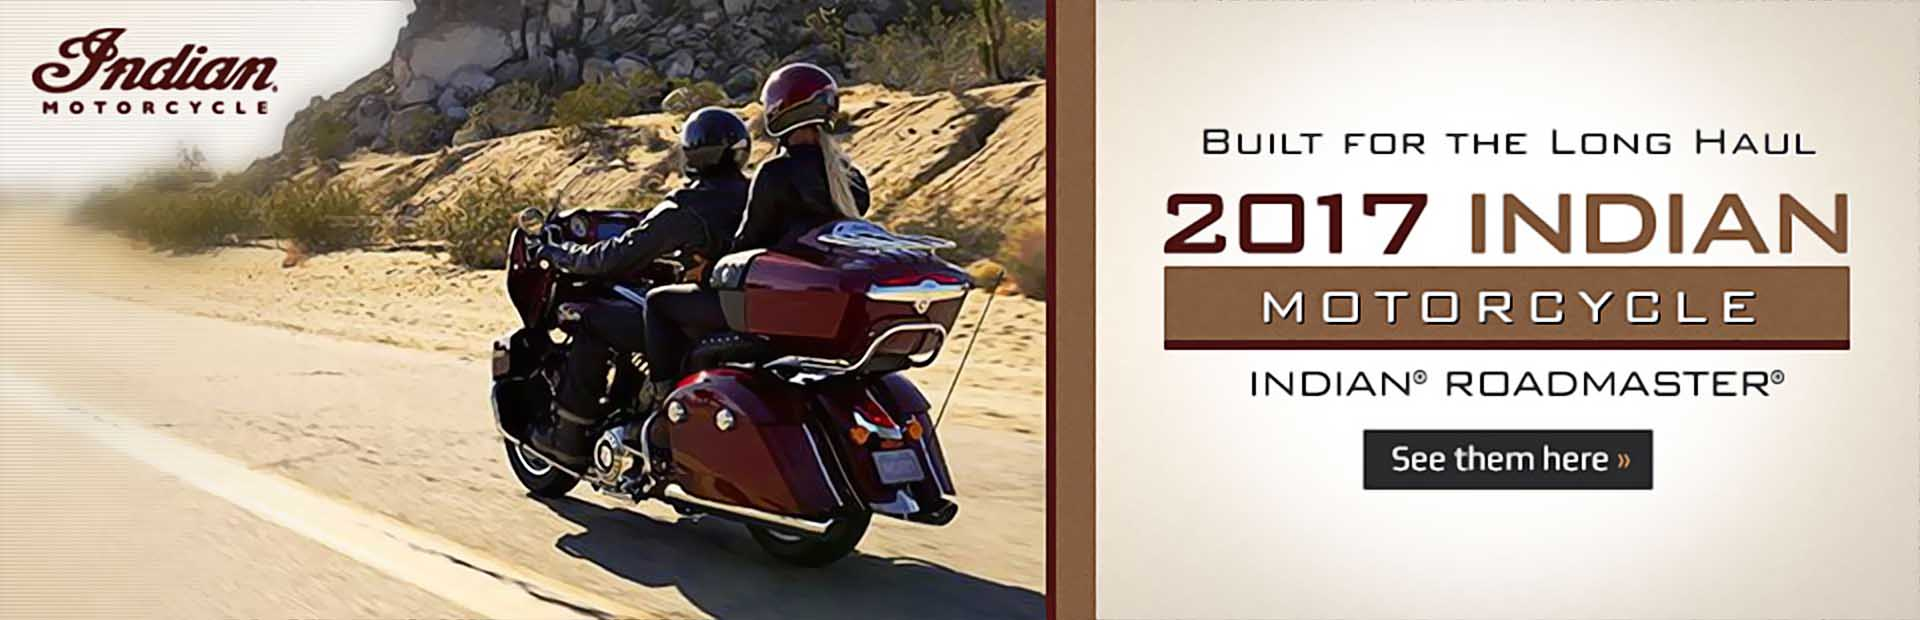 2017 Indian Motorcycle Indian® Roadmaster®: Click here to view the models.